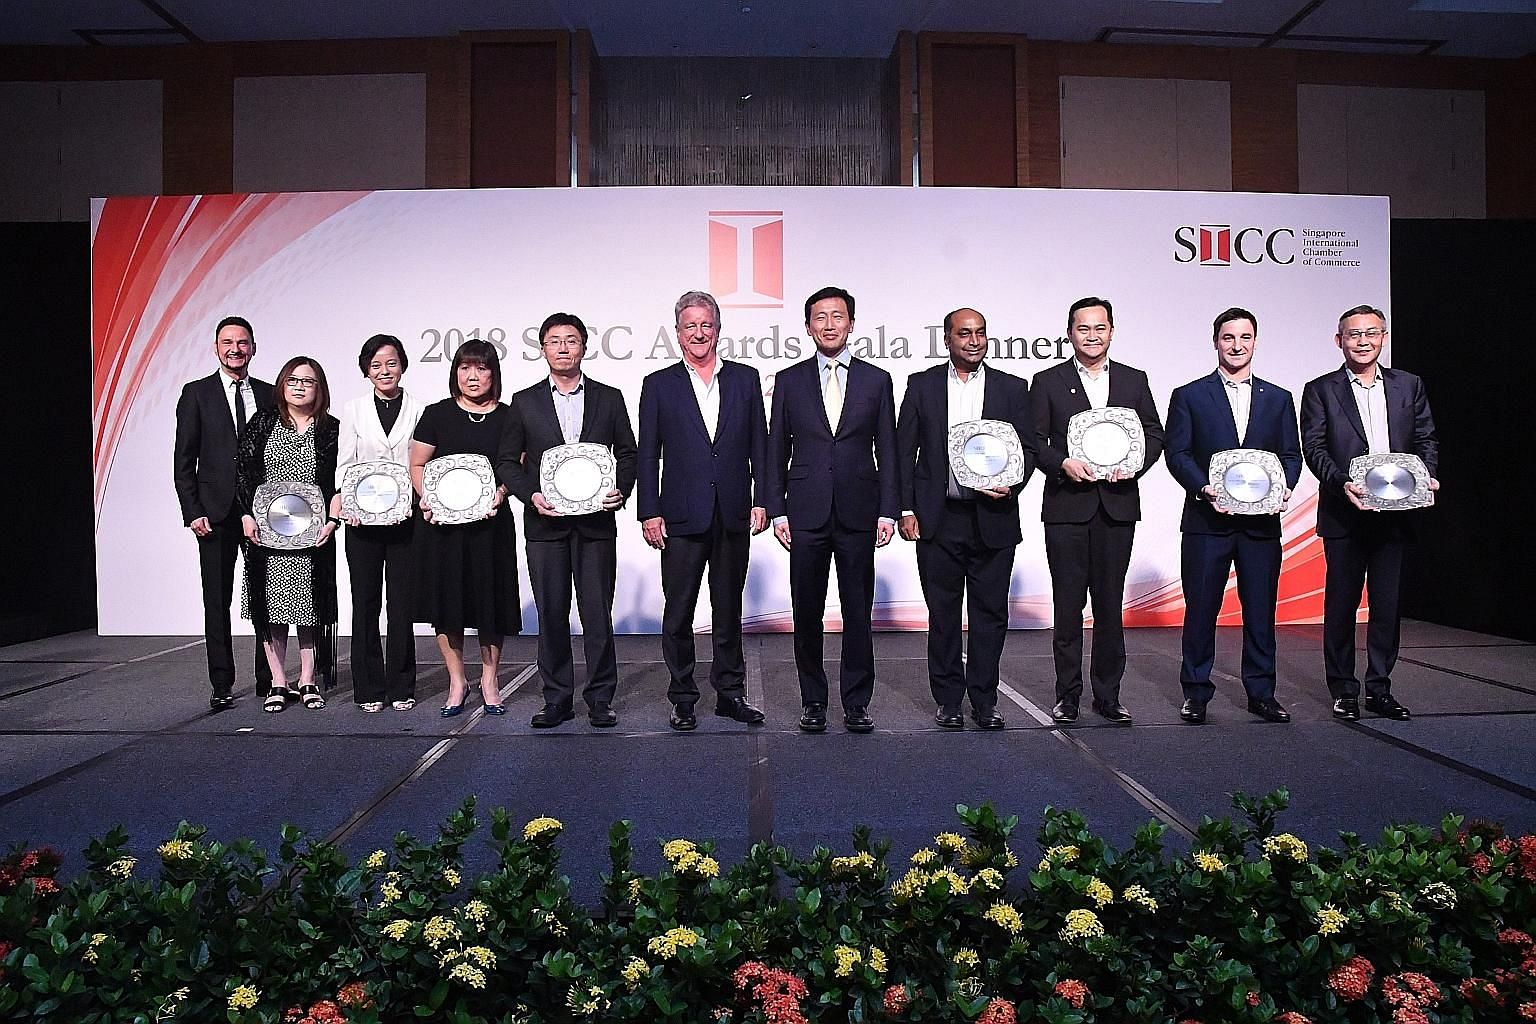 From left: Edwards Lifesciences Singapore vice-president and general manager Rainer Wolf and human resource director Judy Heng, e2i deputy chief executive Vicky Wong, NatSteel Holdings senior vice-president Tan Man Ee, Tiong Seng Contractors senior m